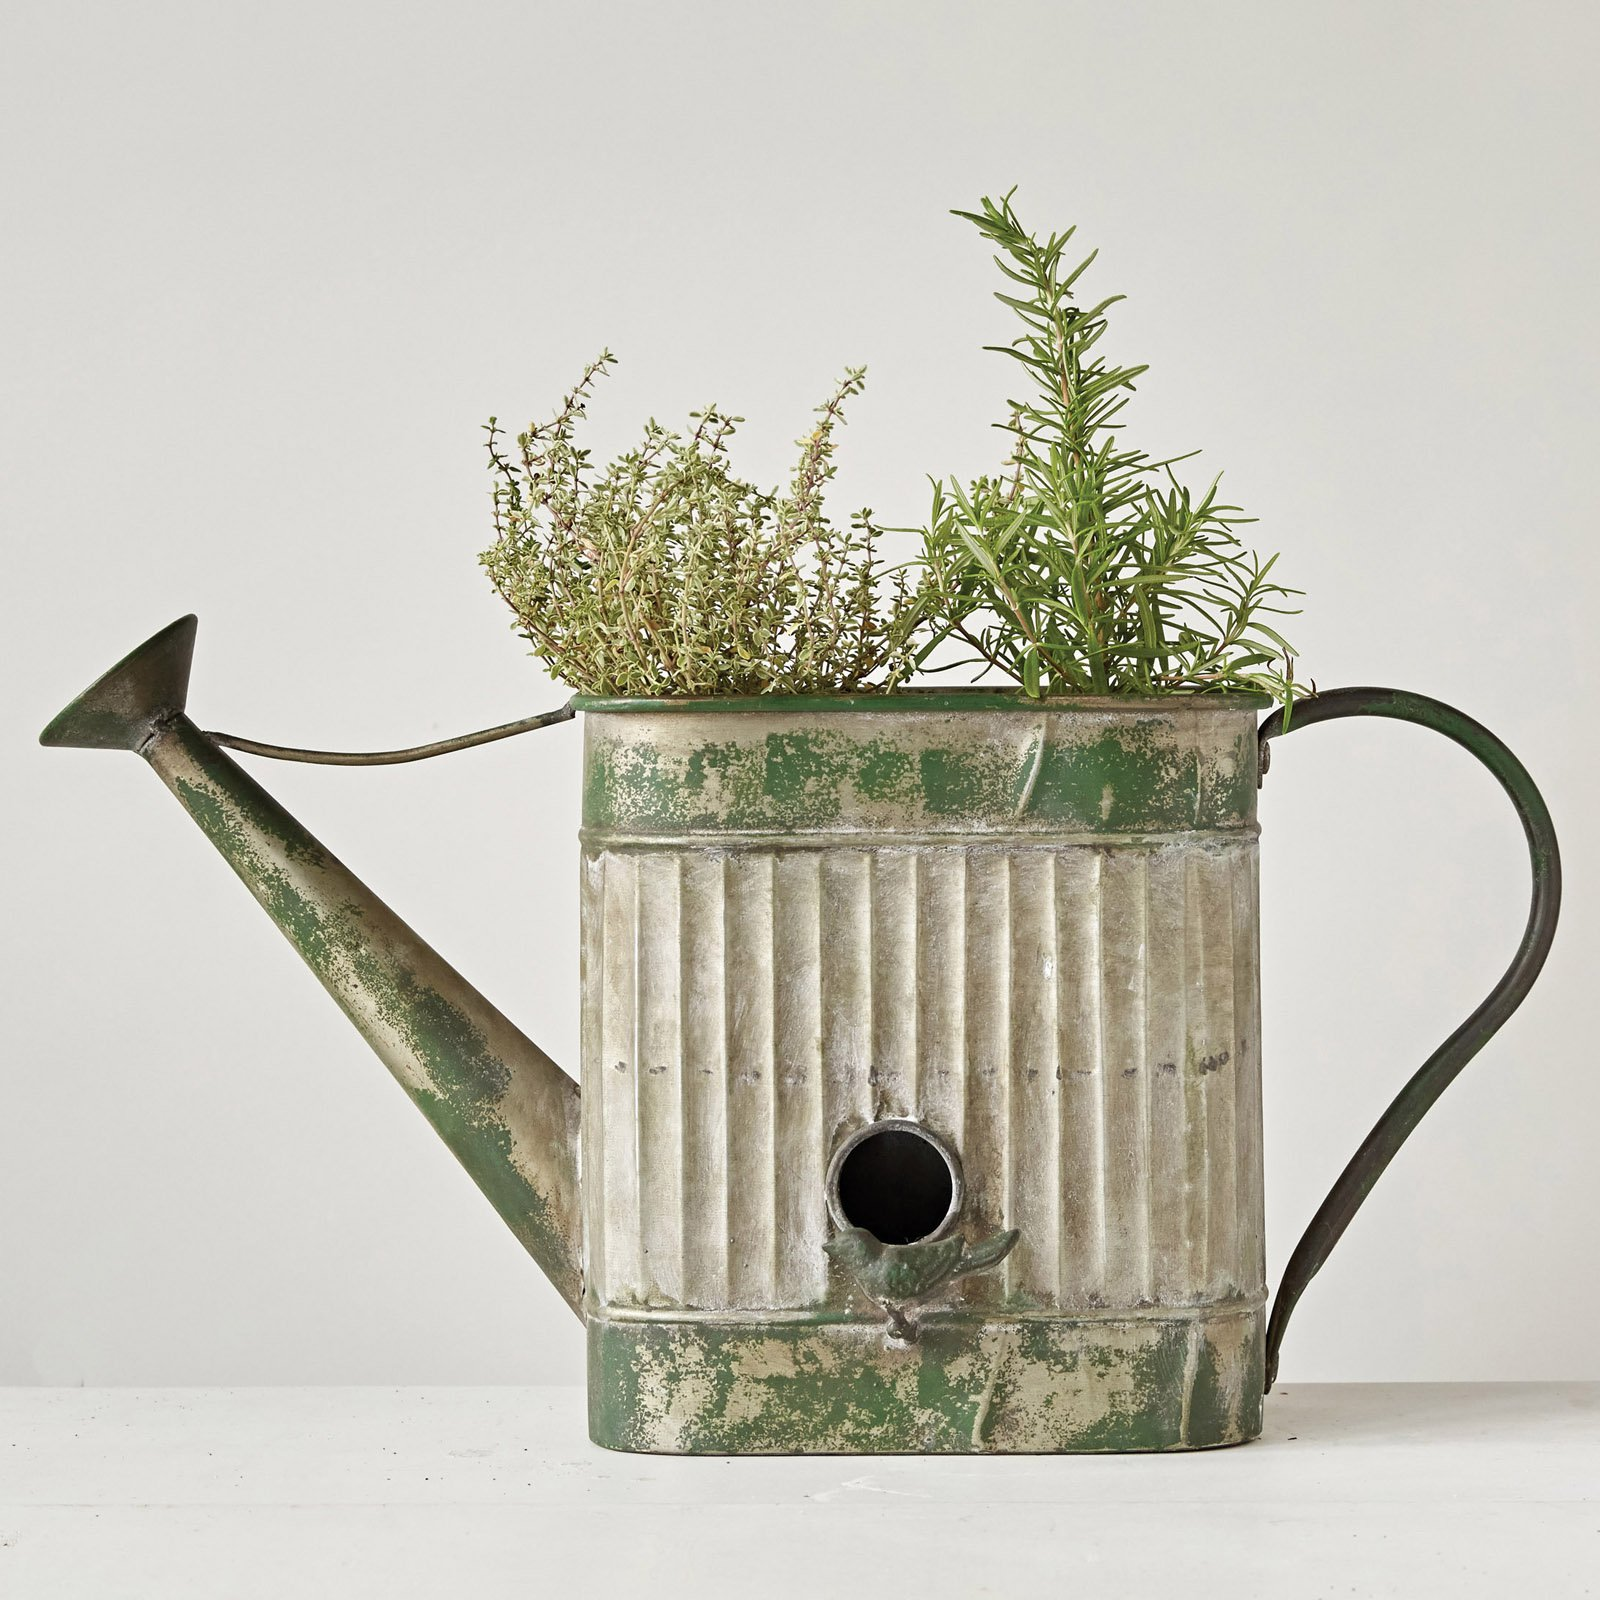 3R Studios Decorative Watering Can and Birdhouse